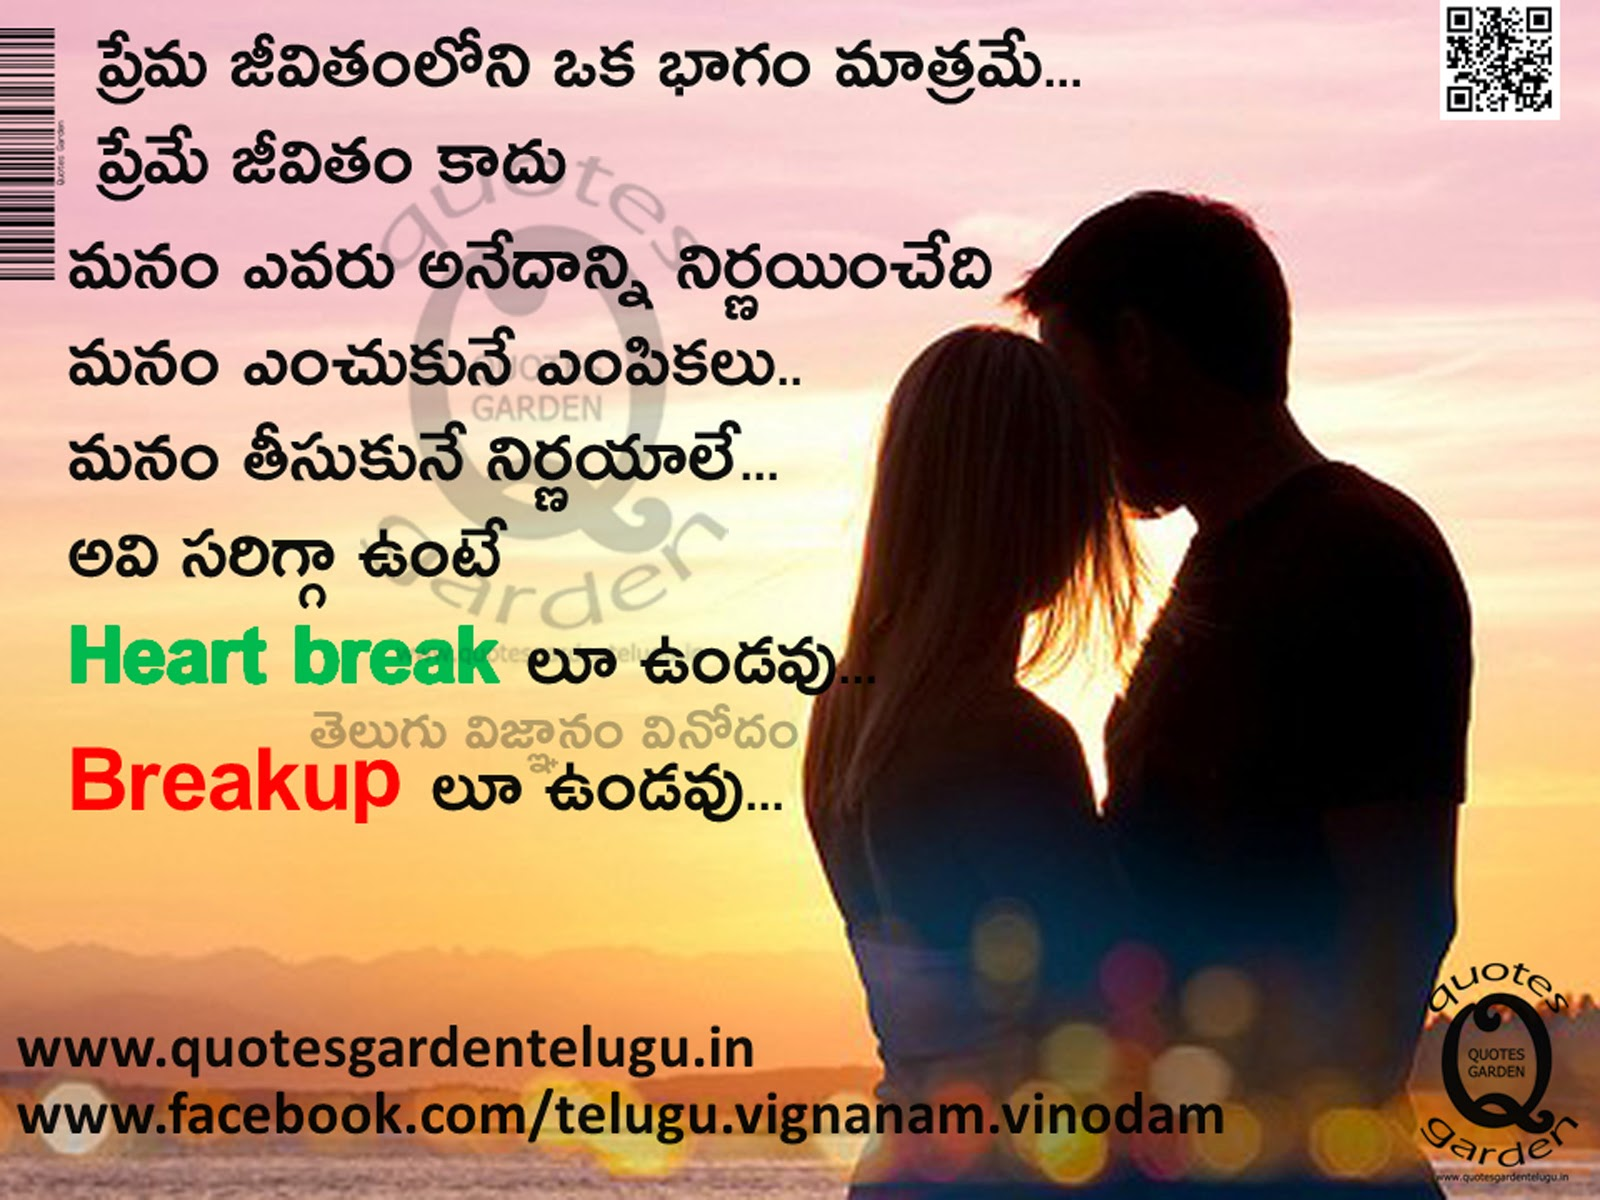 Telugu Love Quotes Endearing Telugu Love And Inspirational Quotes  Quotes Garden Telugu